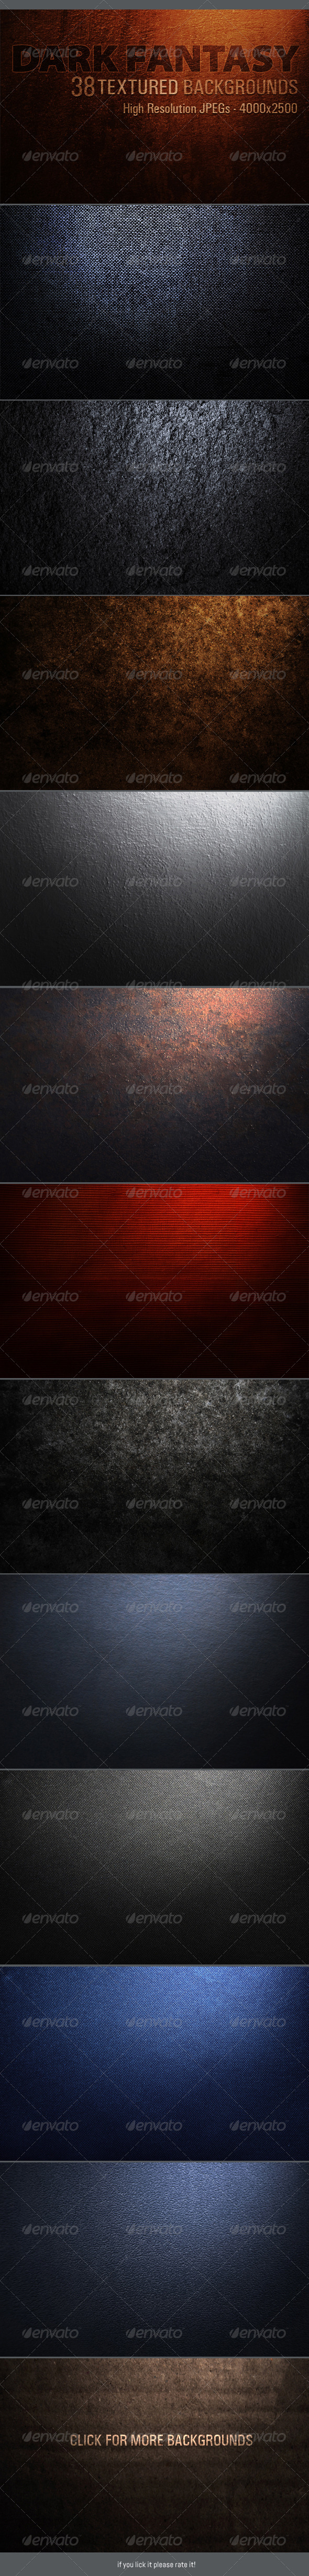 38 Textured Backgrounds - Miscellaneous Backgrounds